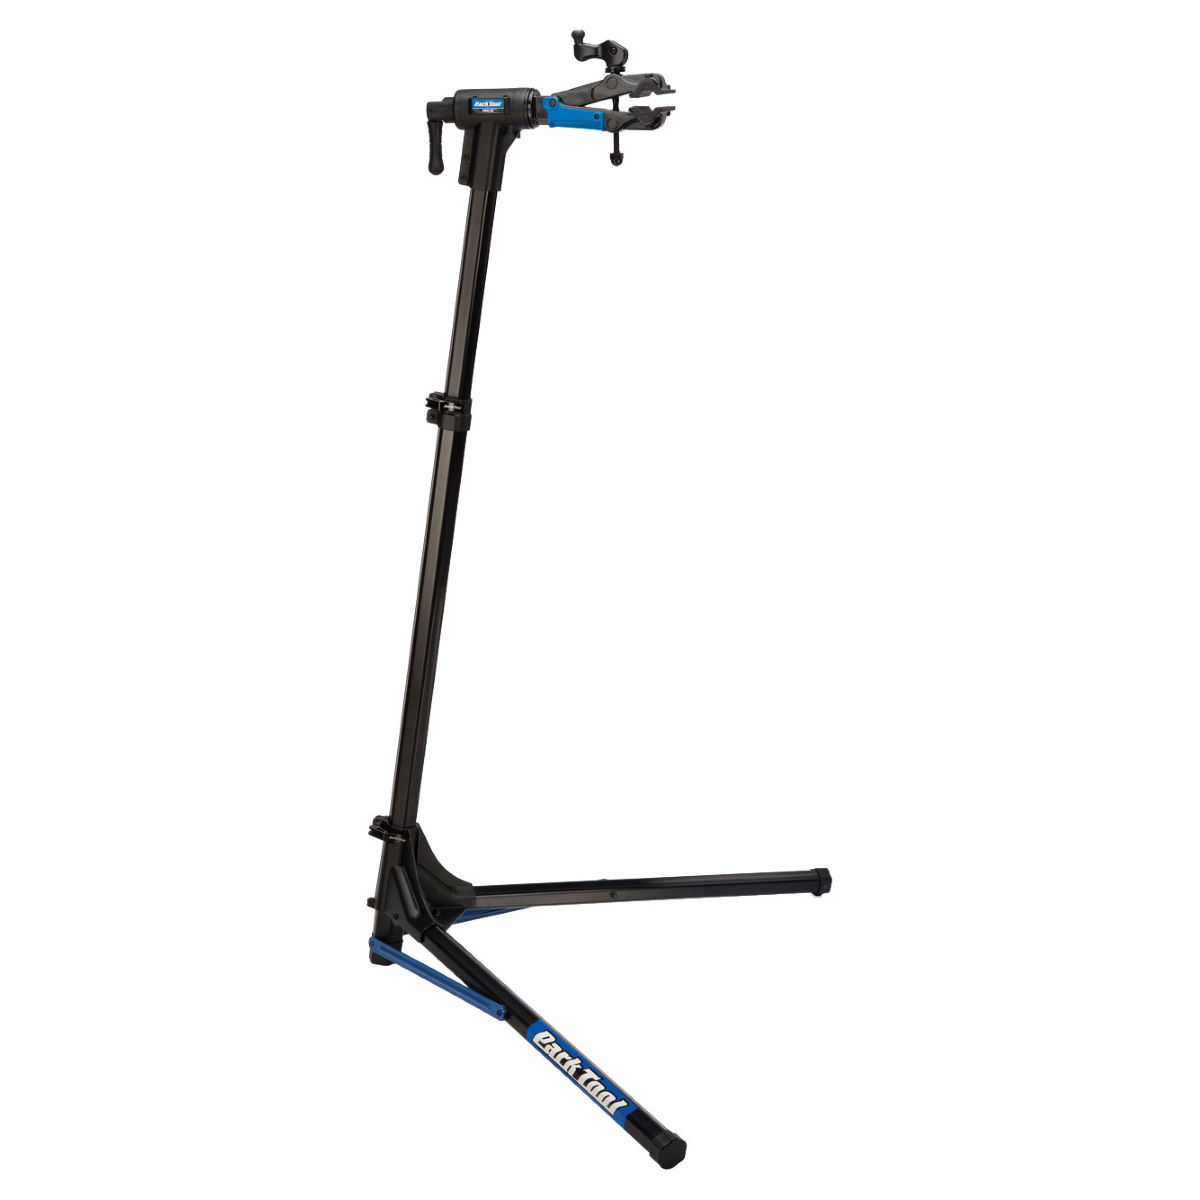 Park Tool Team Issue Portable Stand - Soportes para bicicleta